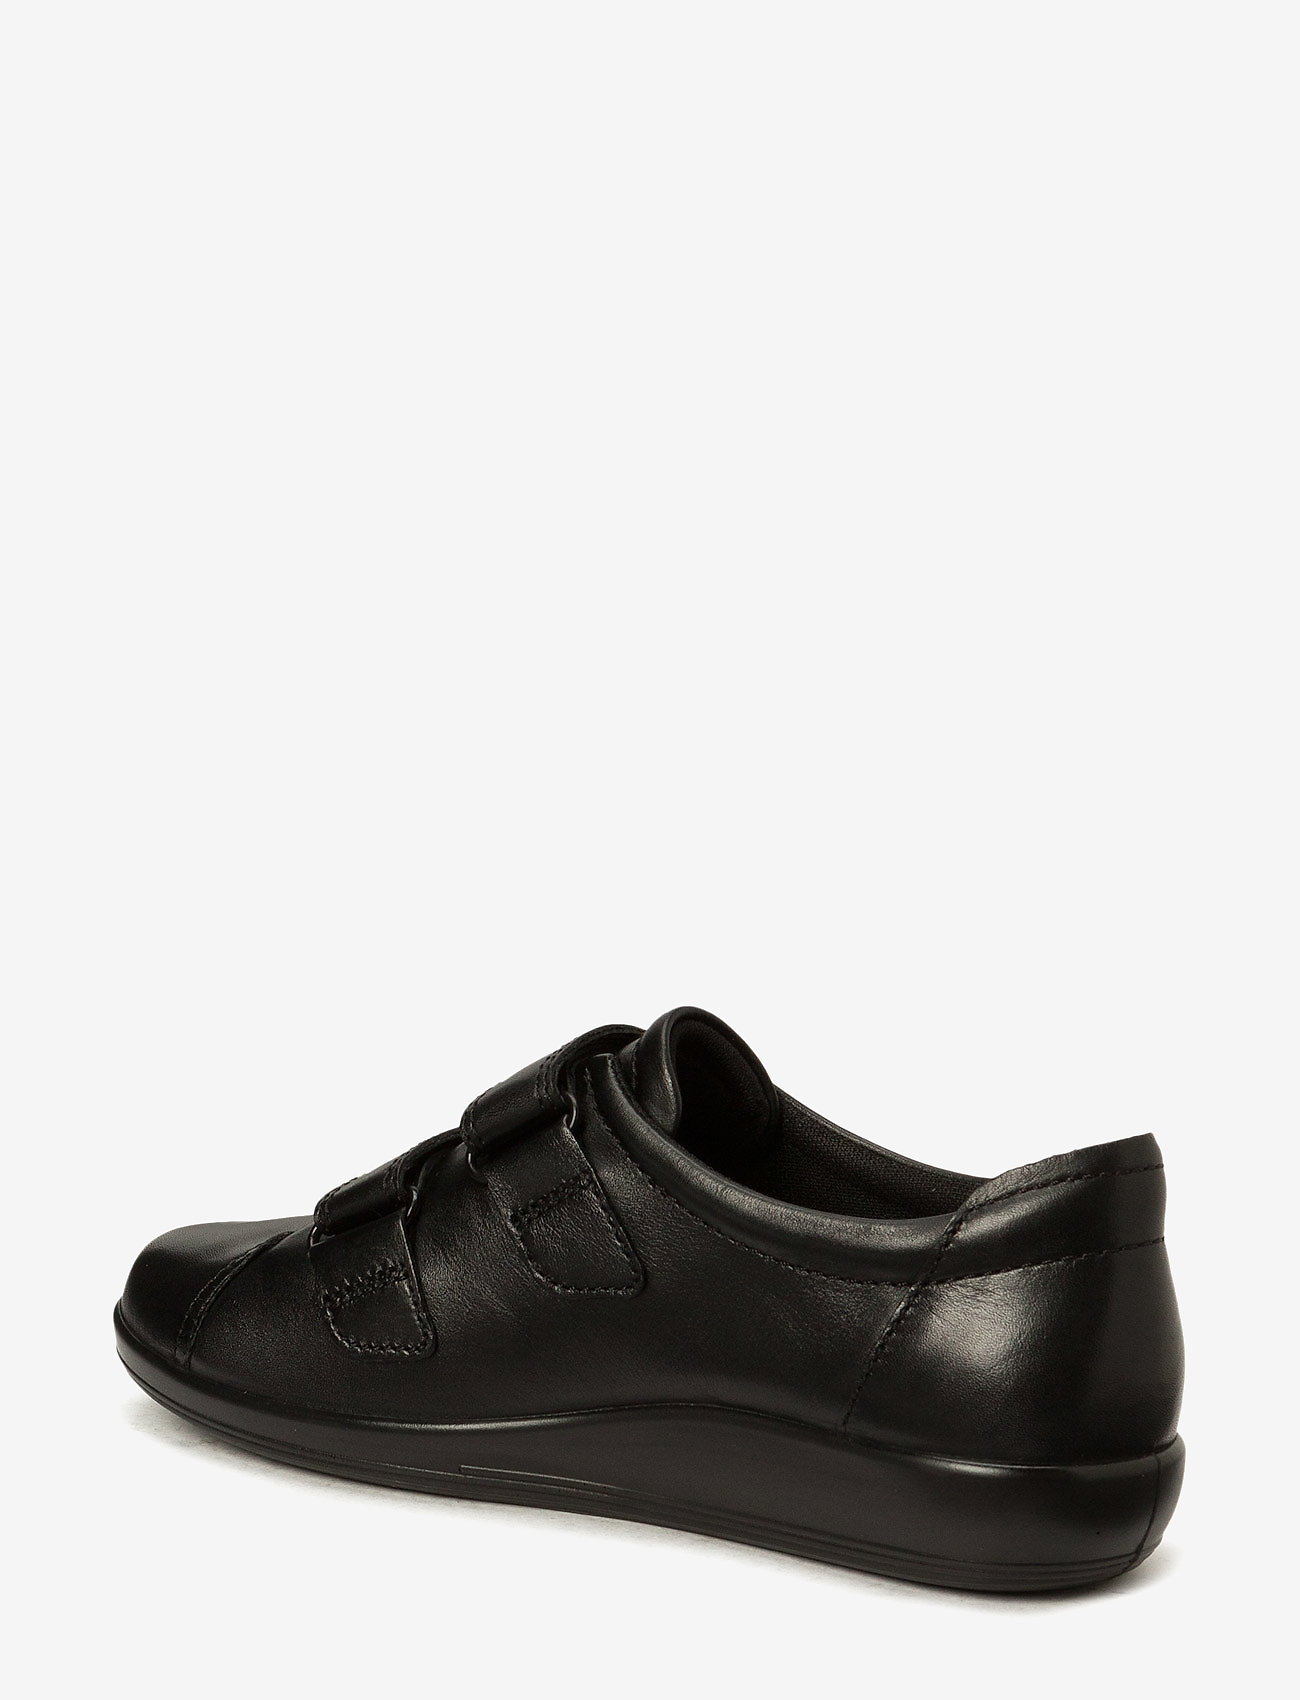 ECCO - SOFT 2.0 - low top sneakers - black with black sole - 1